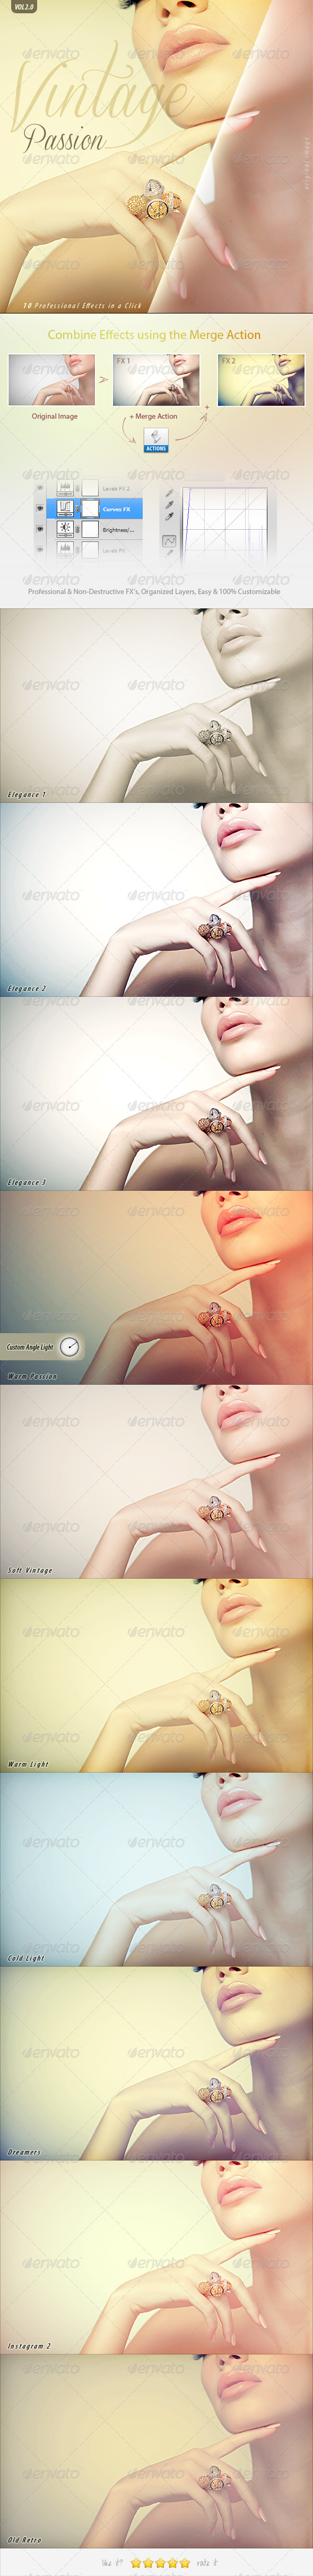 GraphicRiver Vintage Passion Vol 2 10 Pro FX 5010208